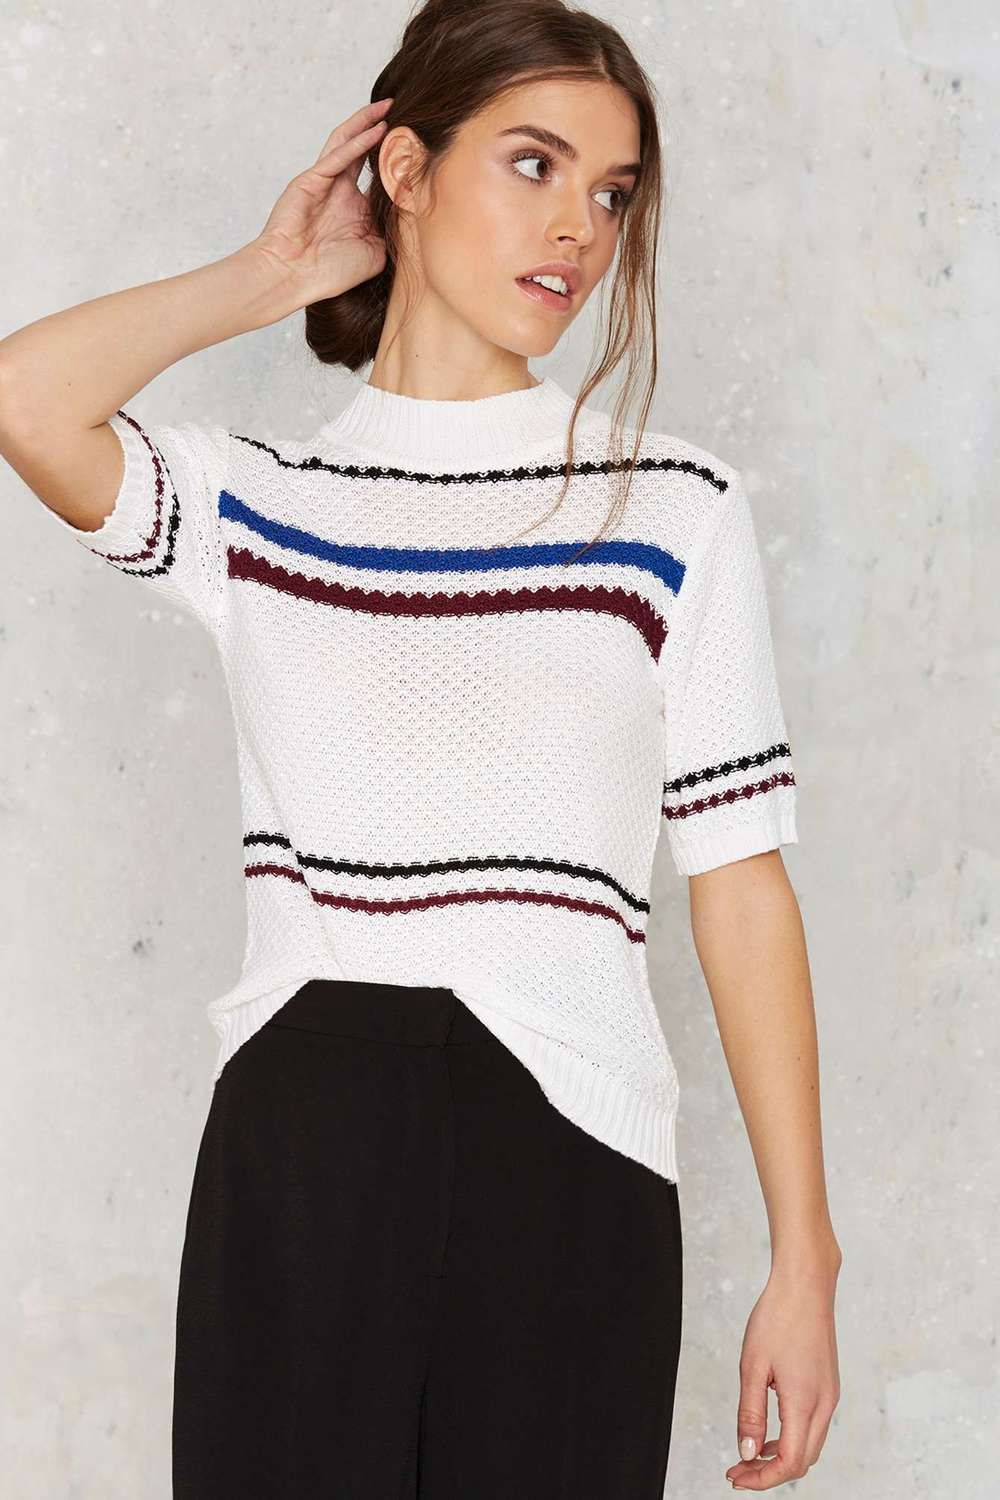 NastyGal School of Mock Striped Sweater; $34.80; image via